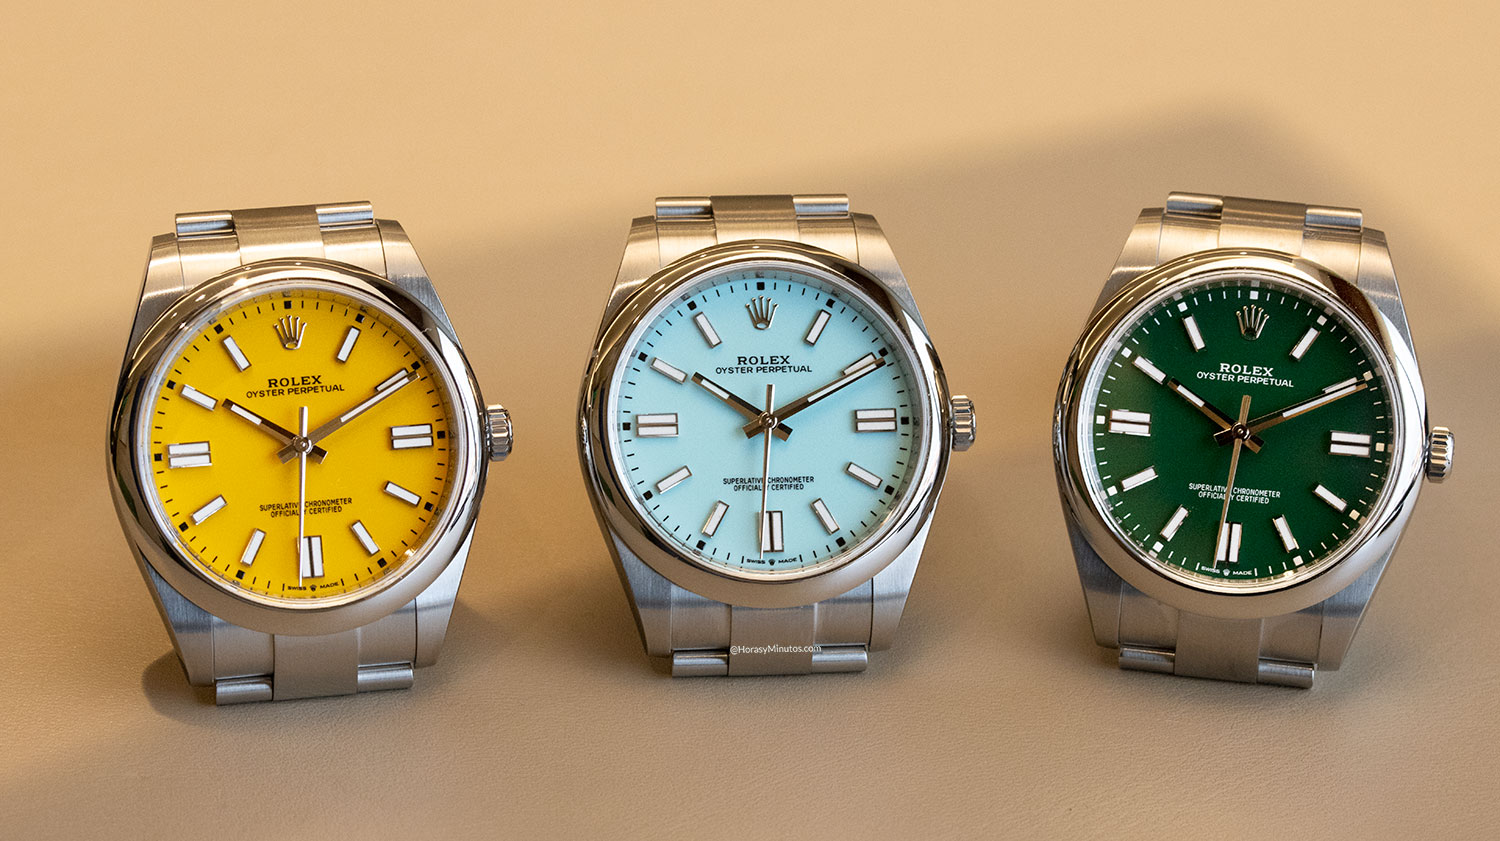 Rolex Oyster Perpetual 41 mm 2020 Referencia 124300